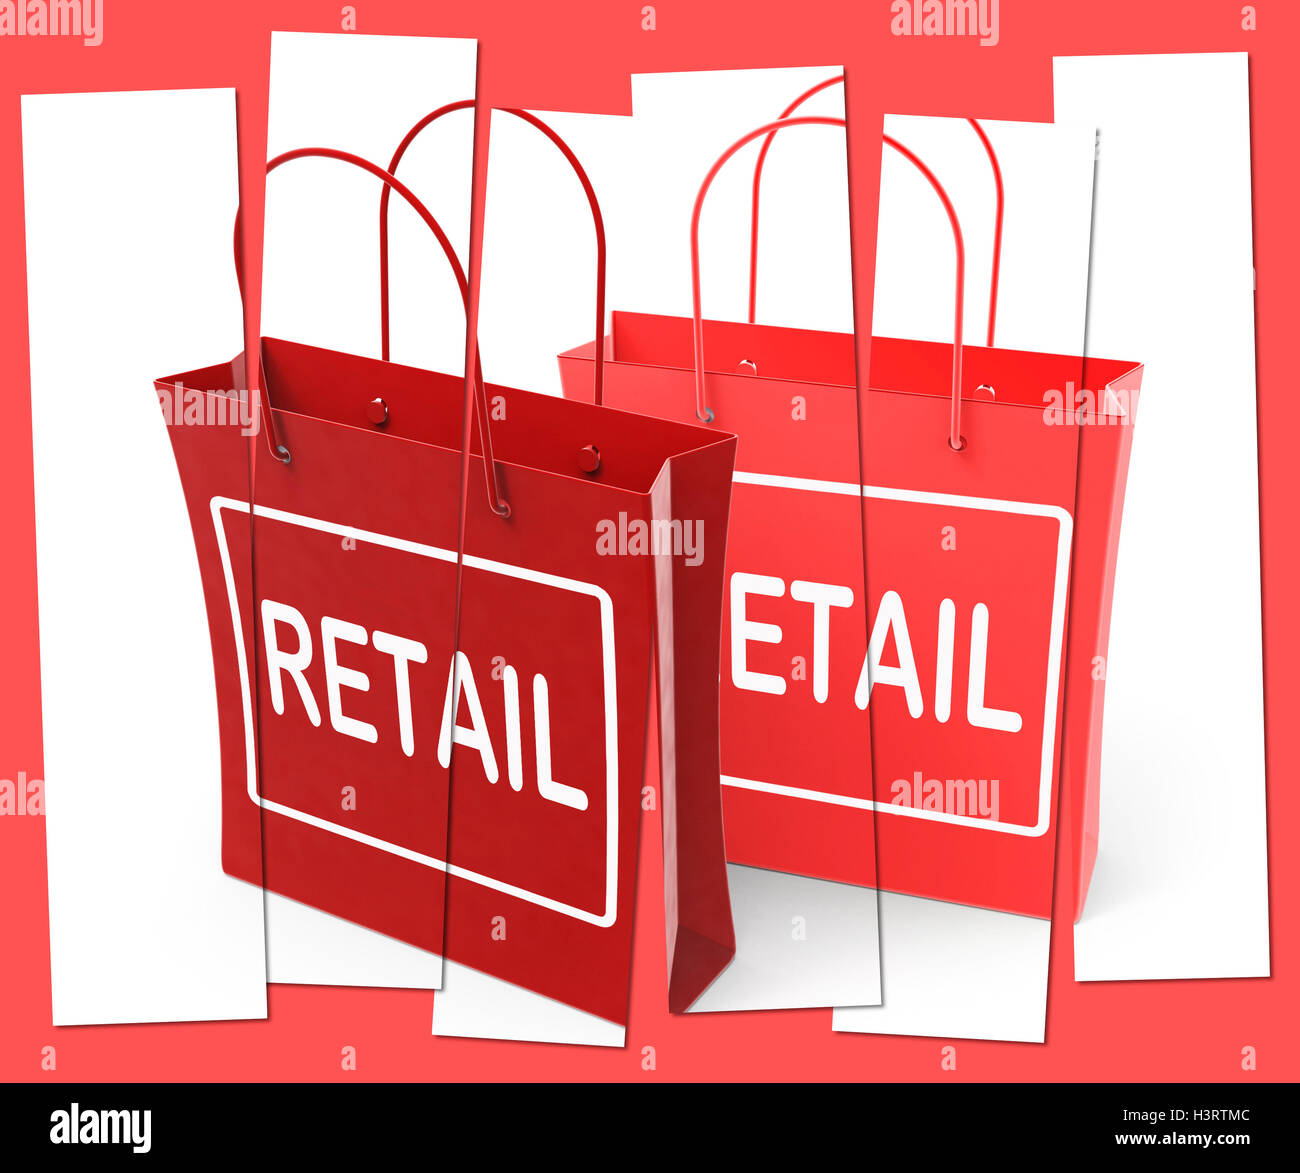 Retail Shopping Bags Show Commercial Sales and Commerce Stock ...